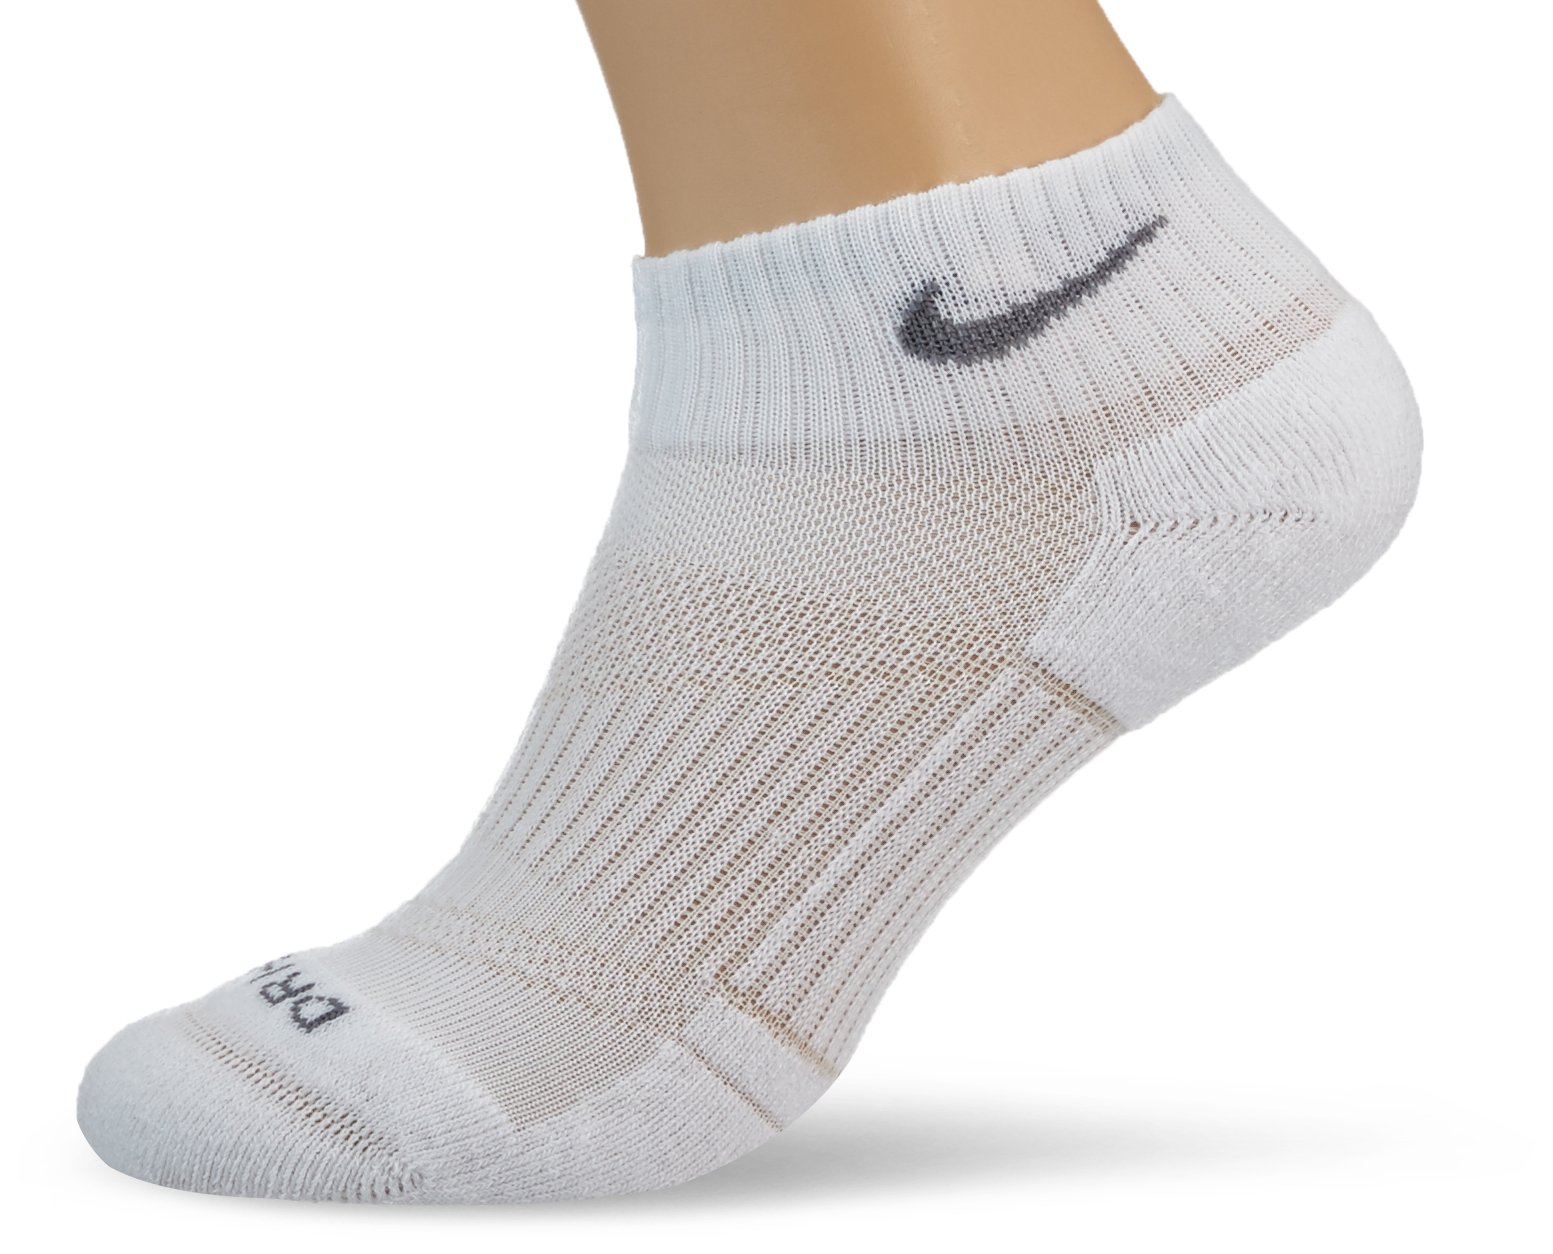 Nike Dri-FIT Half Cushion Quarter - 3 Pair (White, Small)